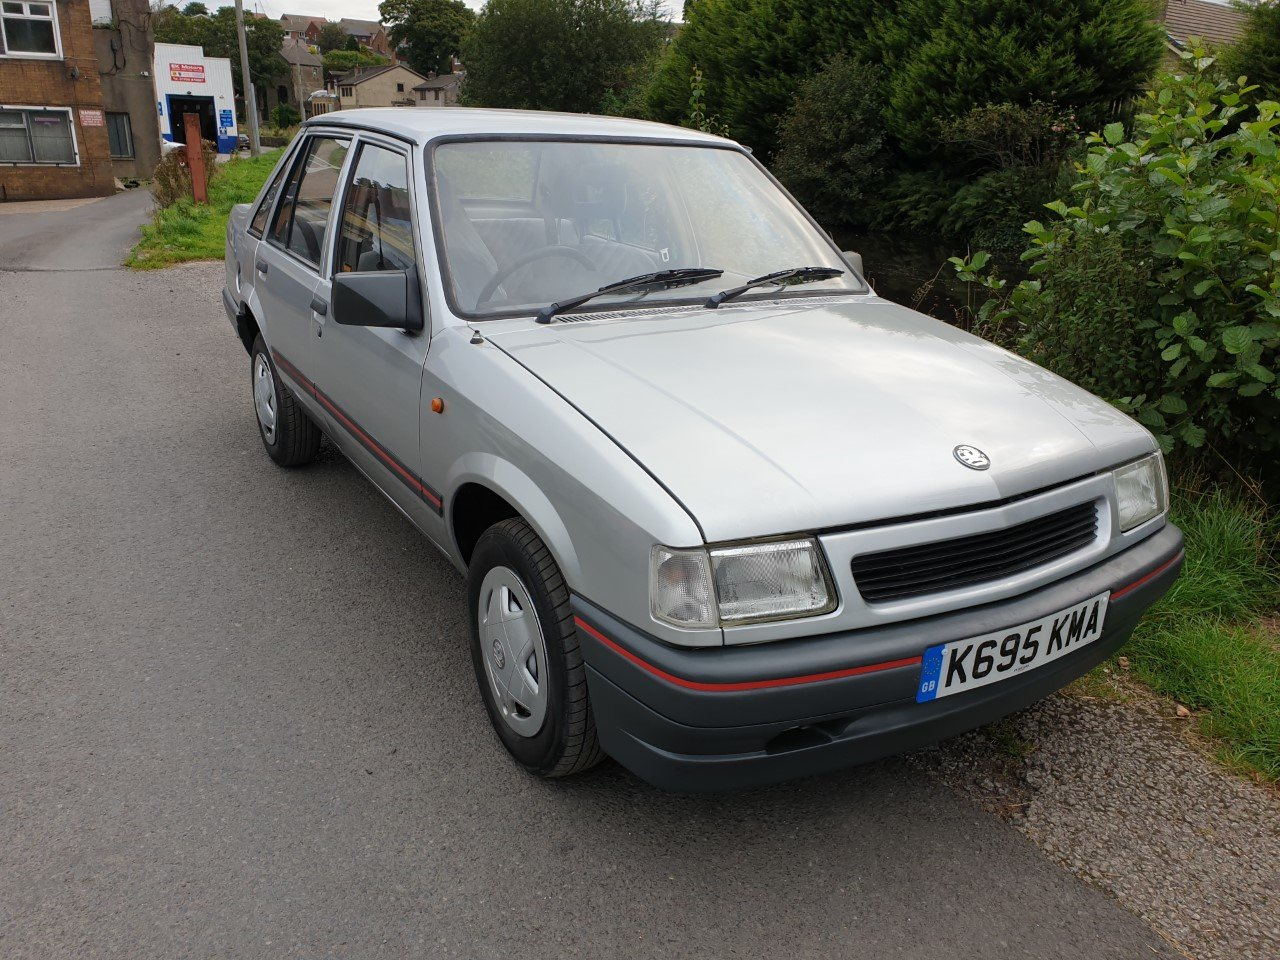 1992 Vauxhall Nova Saloon 4 door 1.2  low mileage  ** 45118 ** For Sale (picture 1 of 6)